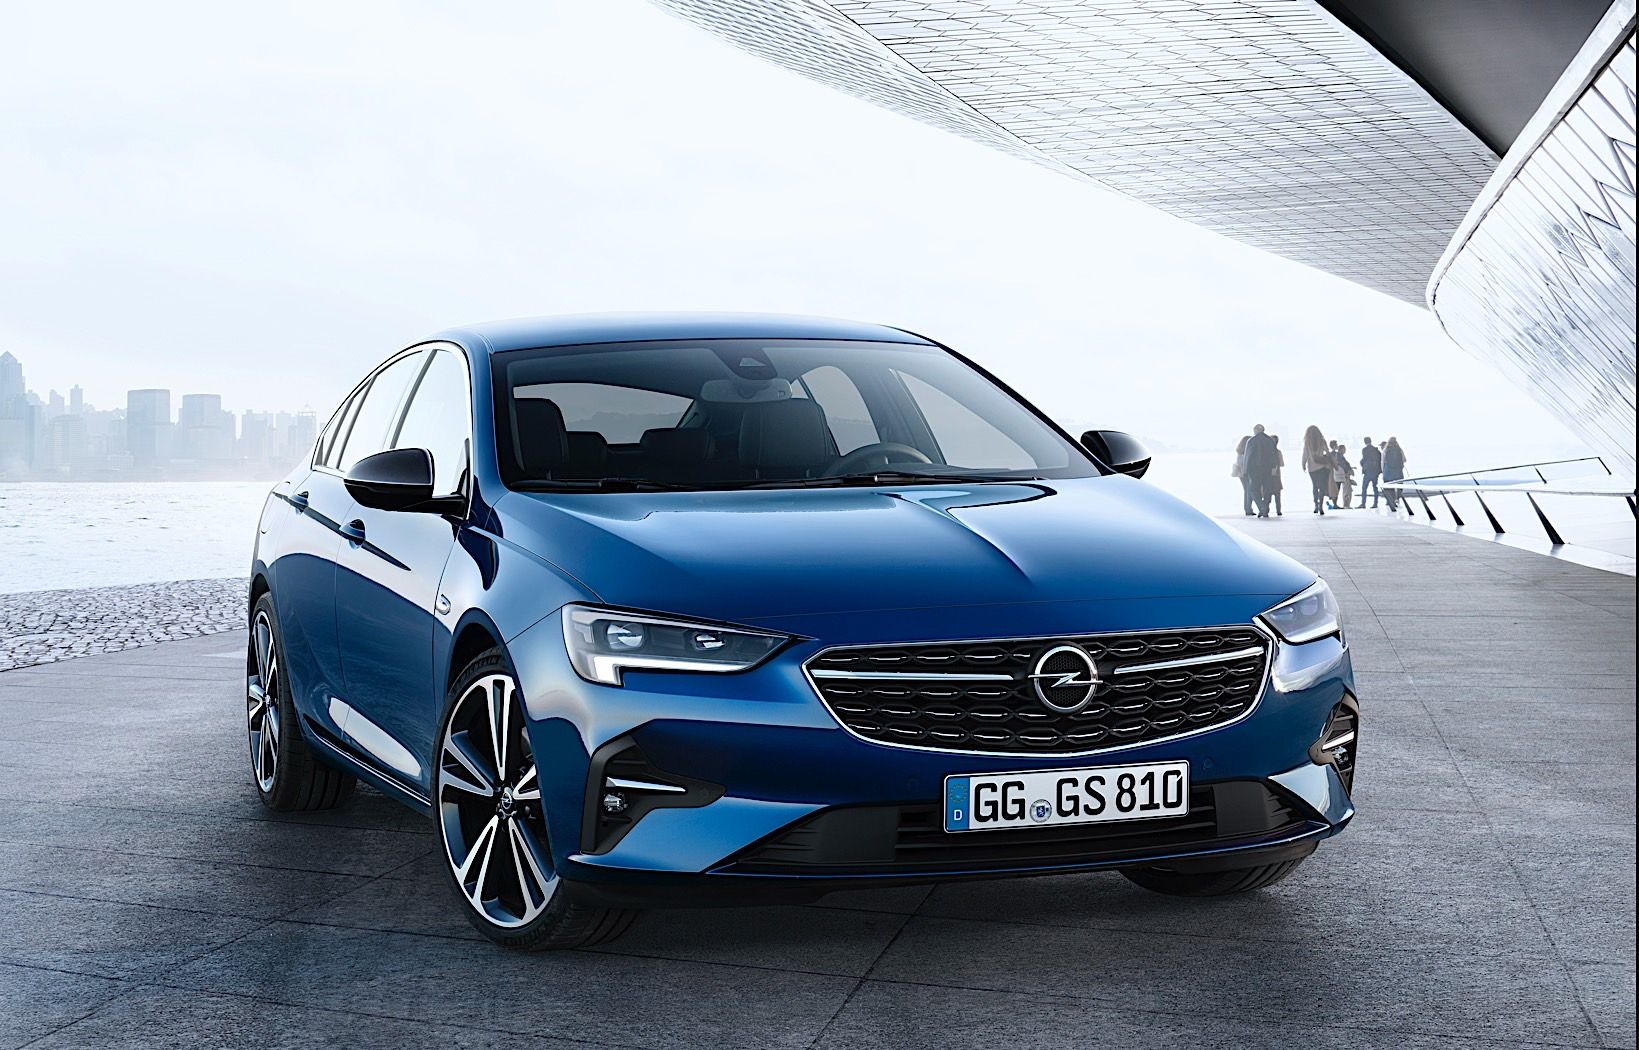 Opel Previews the New Insignia, Now with a Digital Rearview Camera